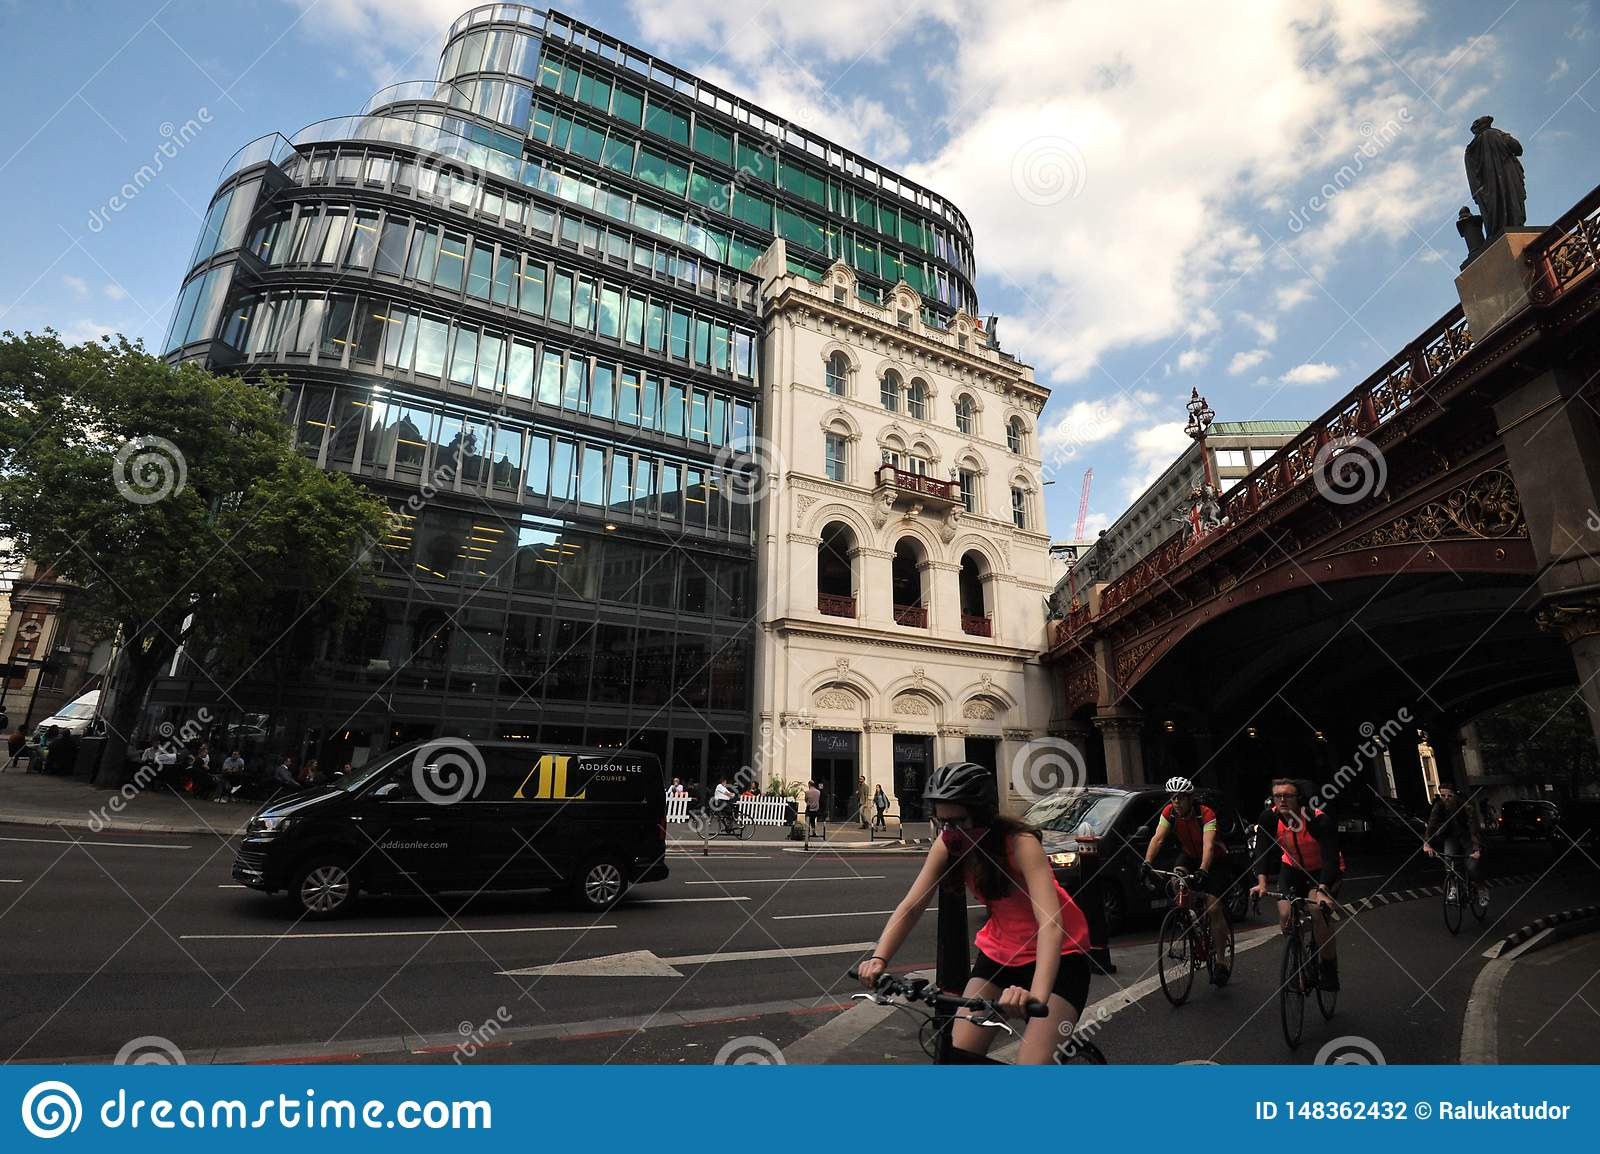 Amazon S Head Office In London Sixty London At 60 Holborn Viaduct